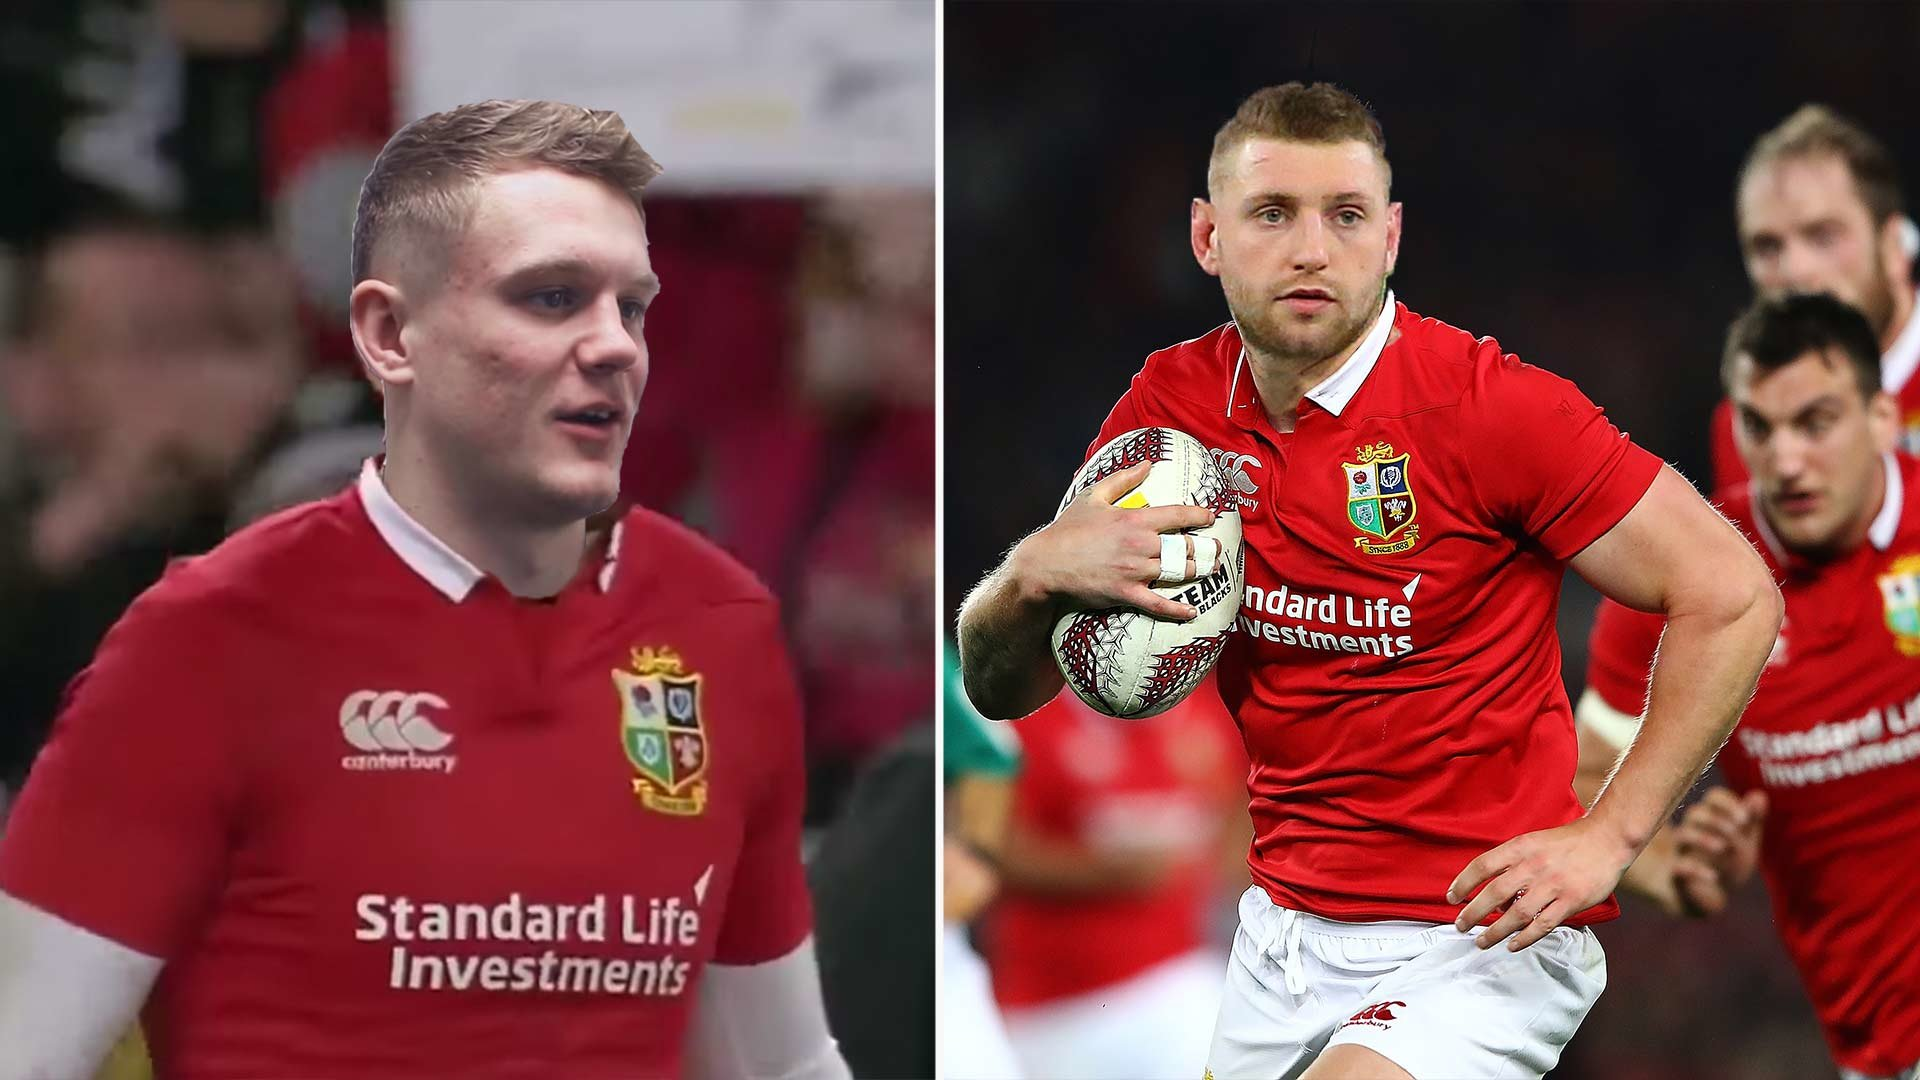 These are the Scottish players who genuinely deserve to be on the next Lions Tour